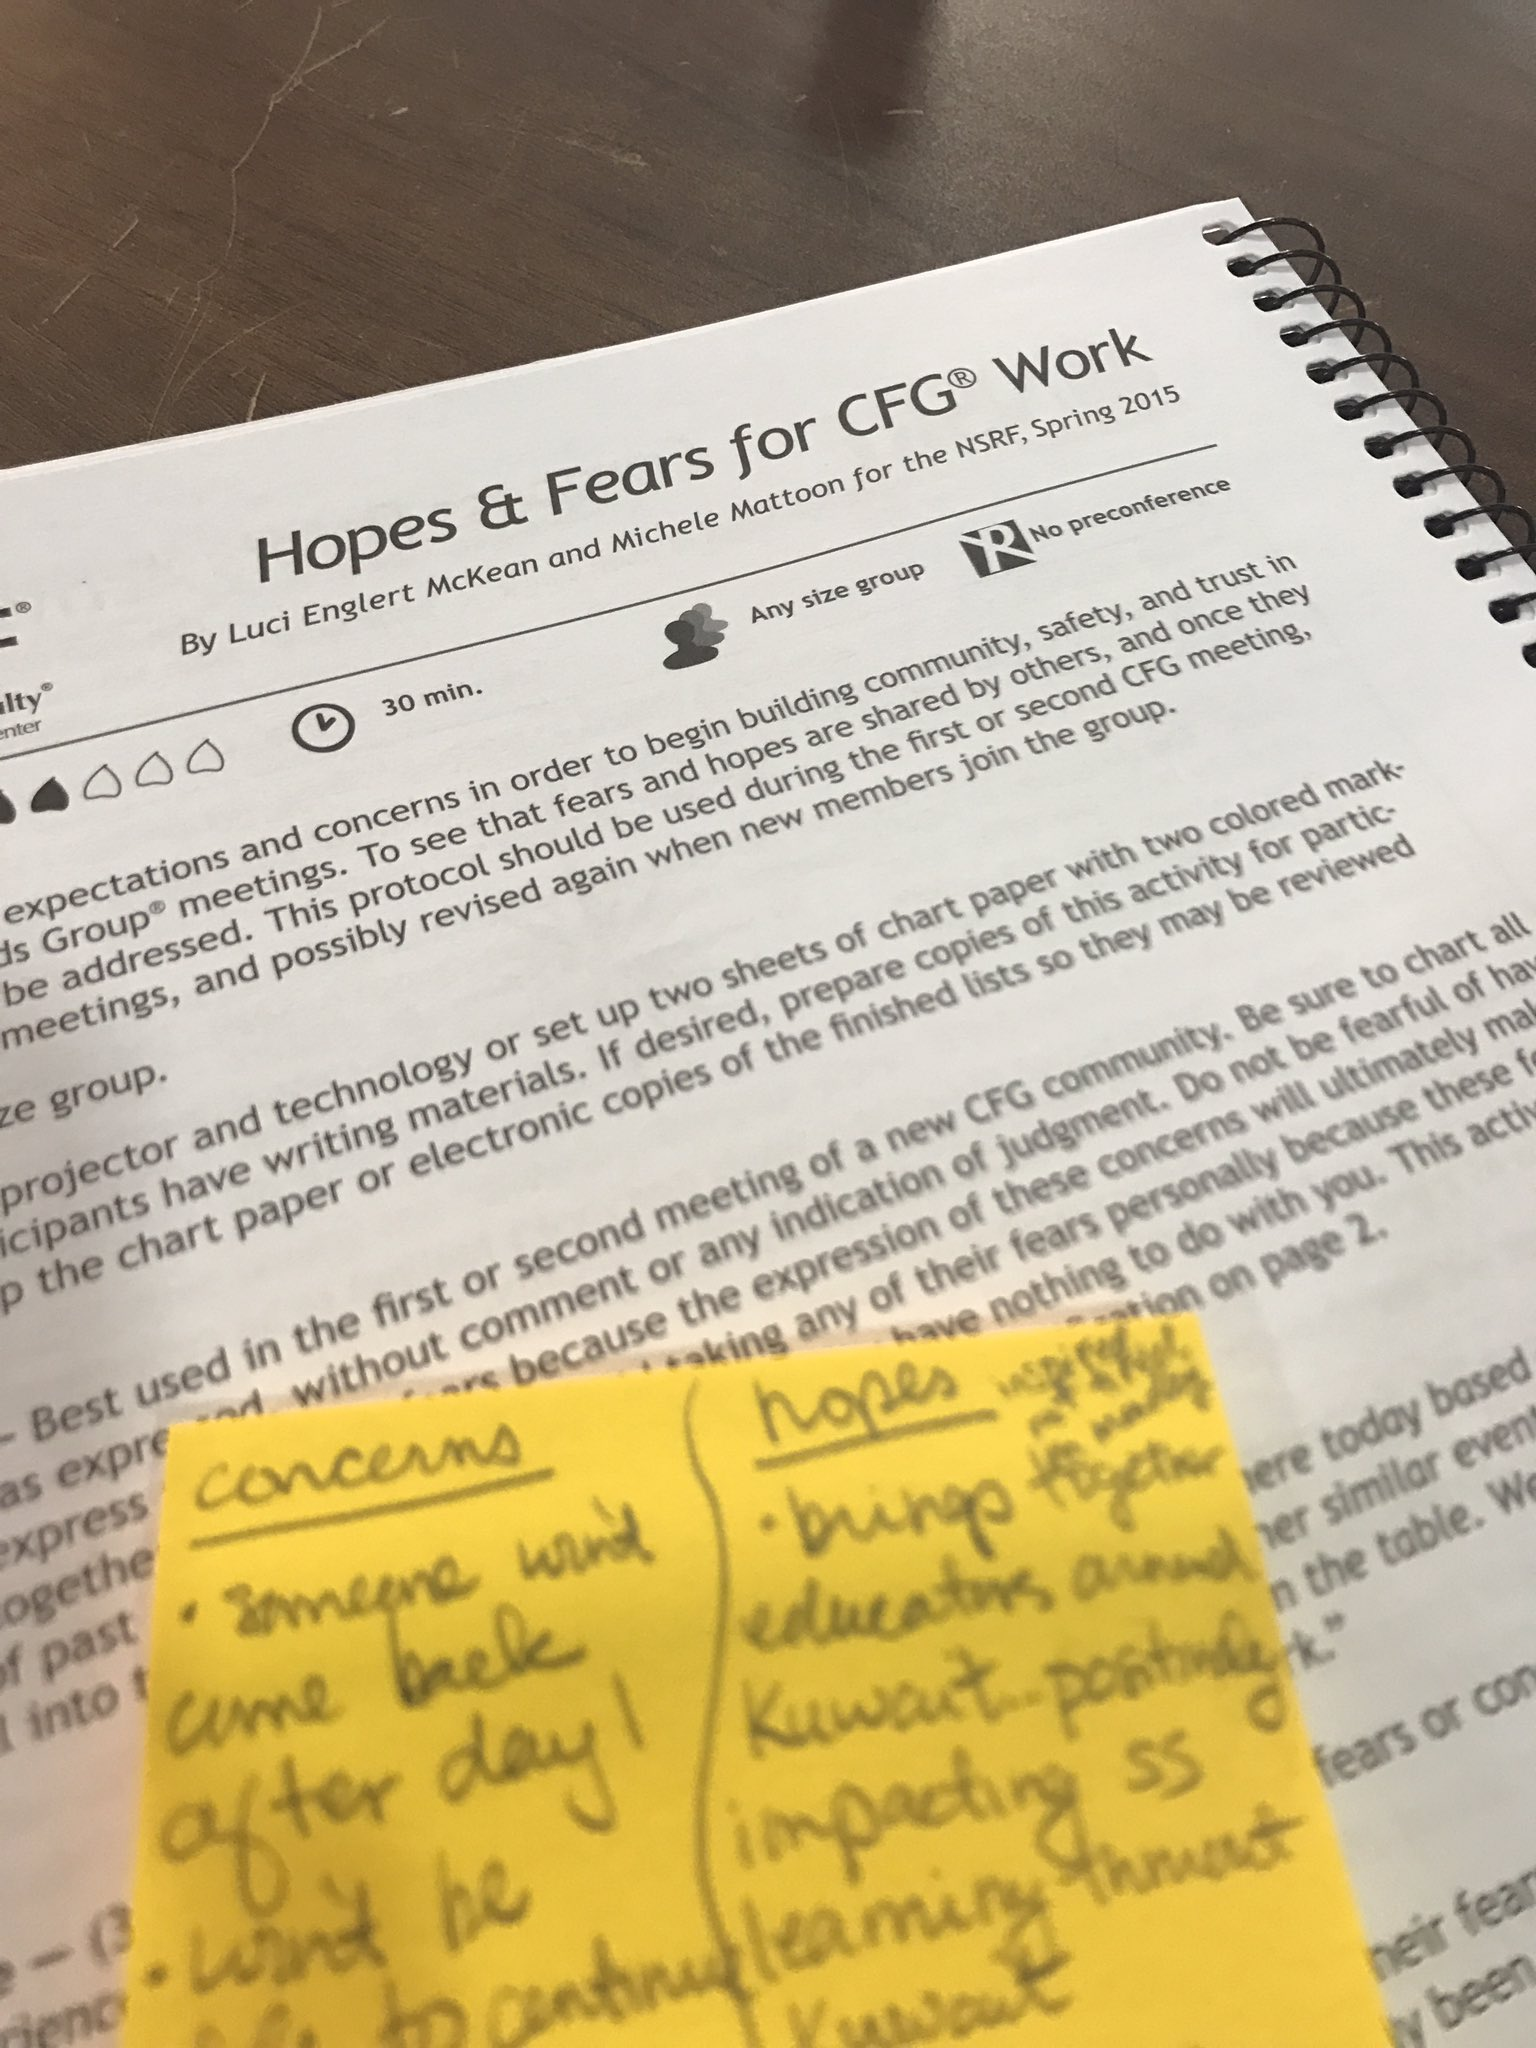 Sharing our hopes & fears of #CFGwork & participating in #CriticalFriends Coaches training https://t.co/bEr4jWzVZq